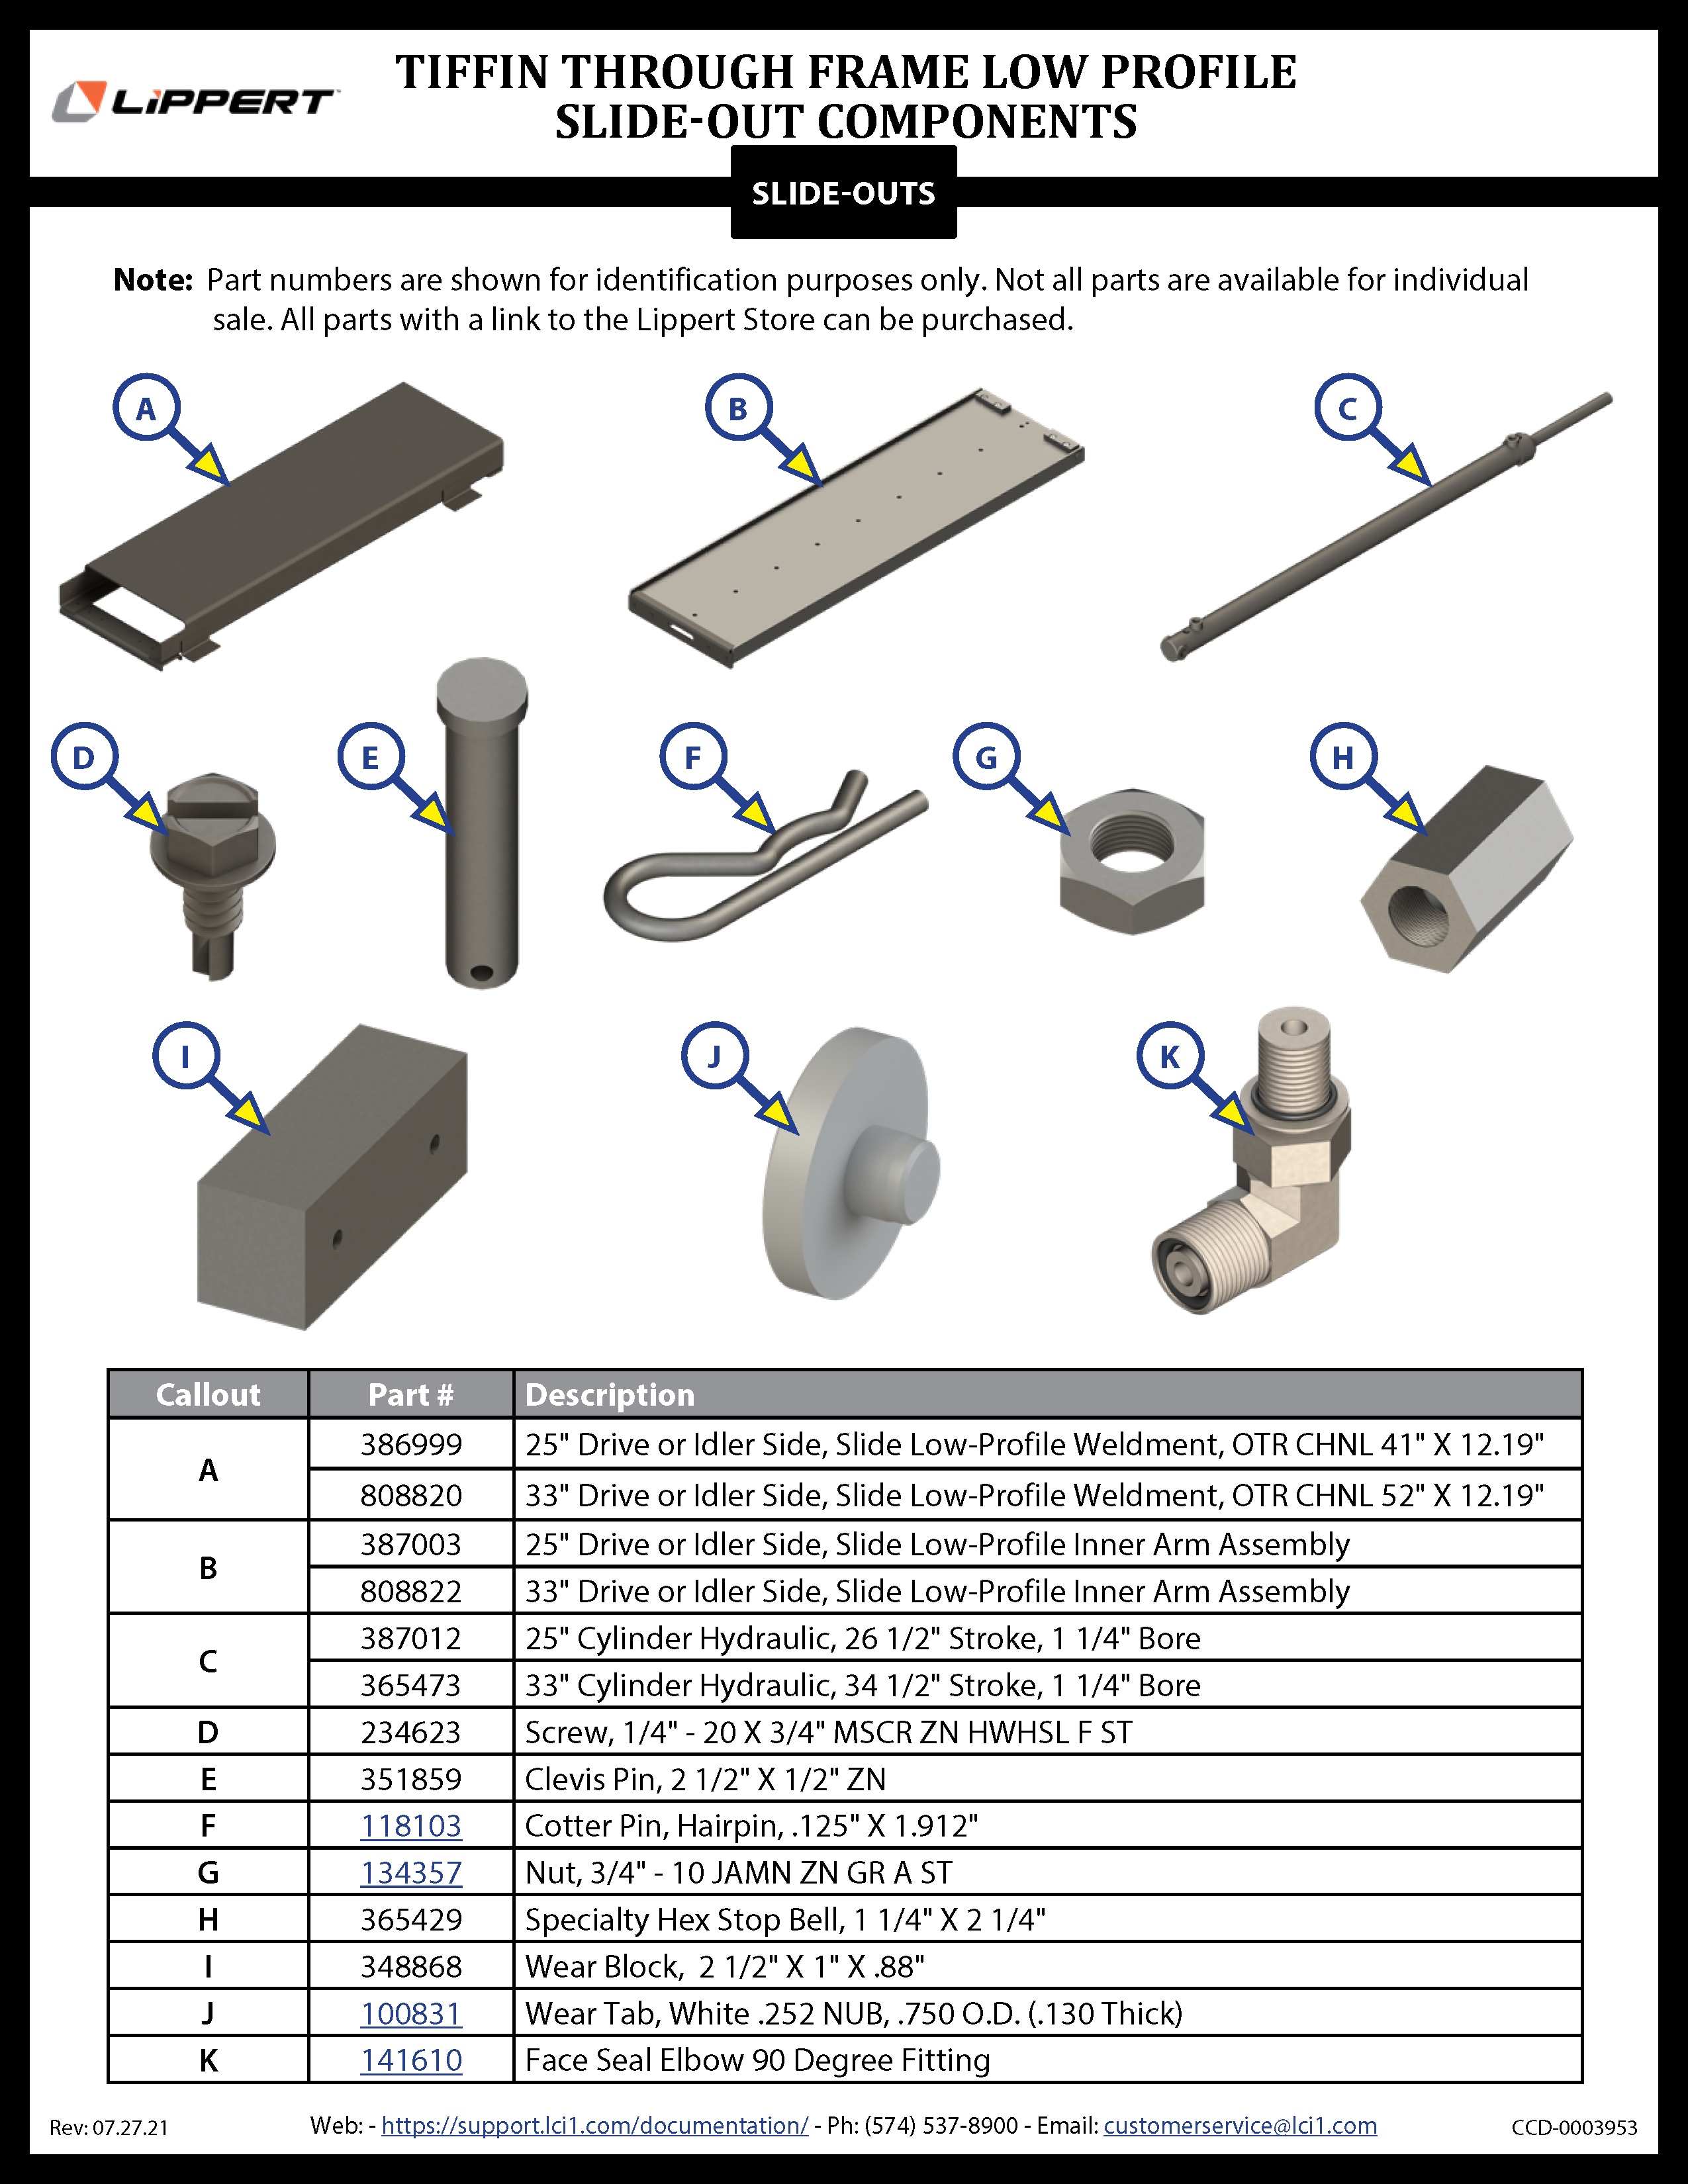 Tiffin Through Frame Low Profile Slide-out Components